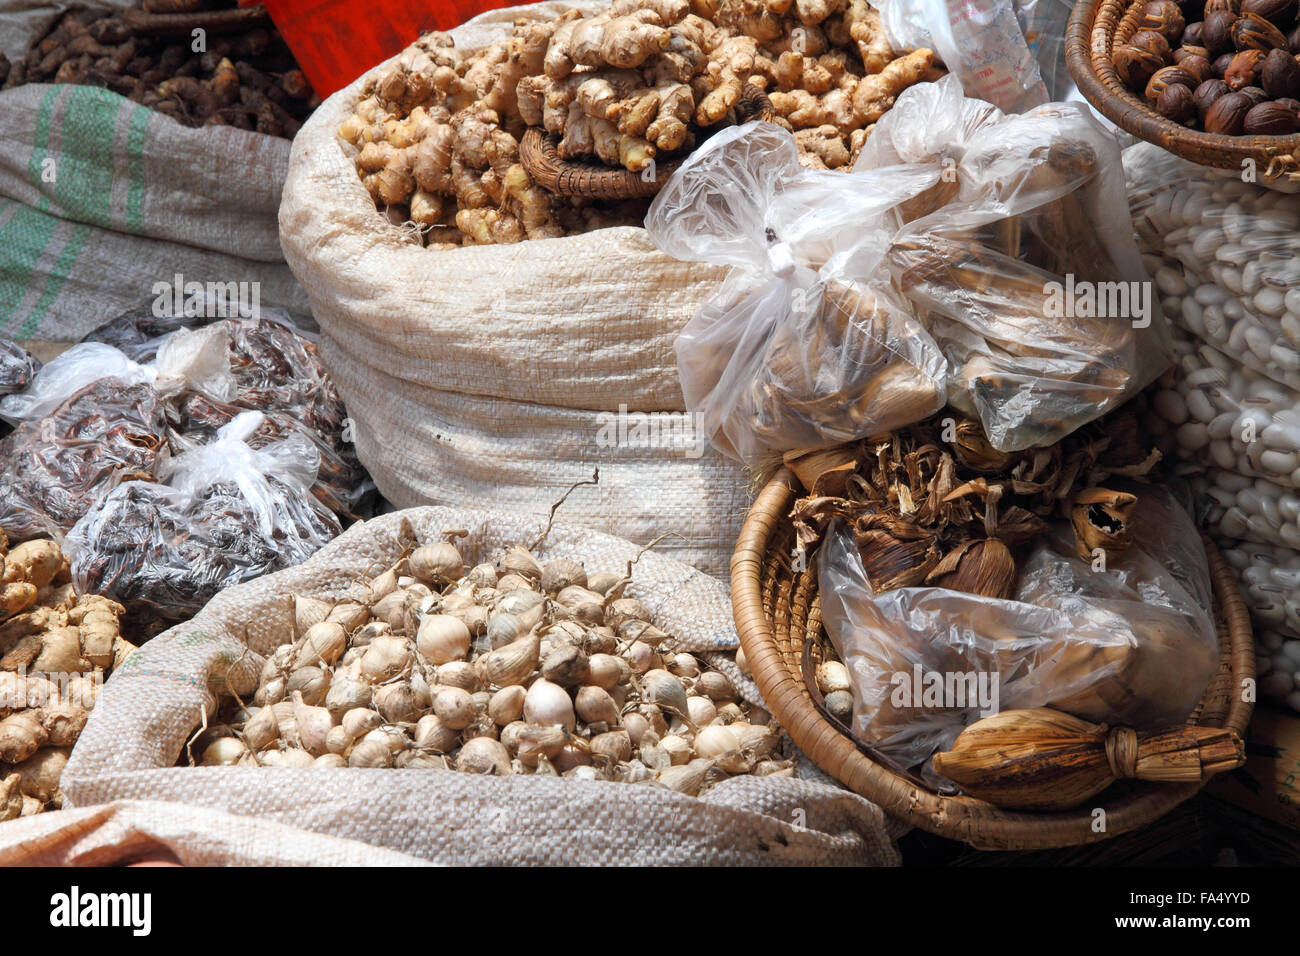 Bags of cooking spices and aromatics in an African market.  Seens are ginger, garlic, nuts, onions. - Stock Image